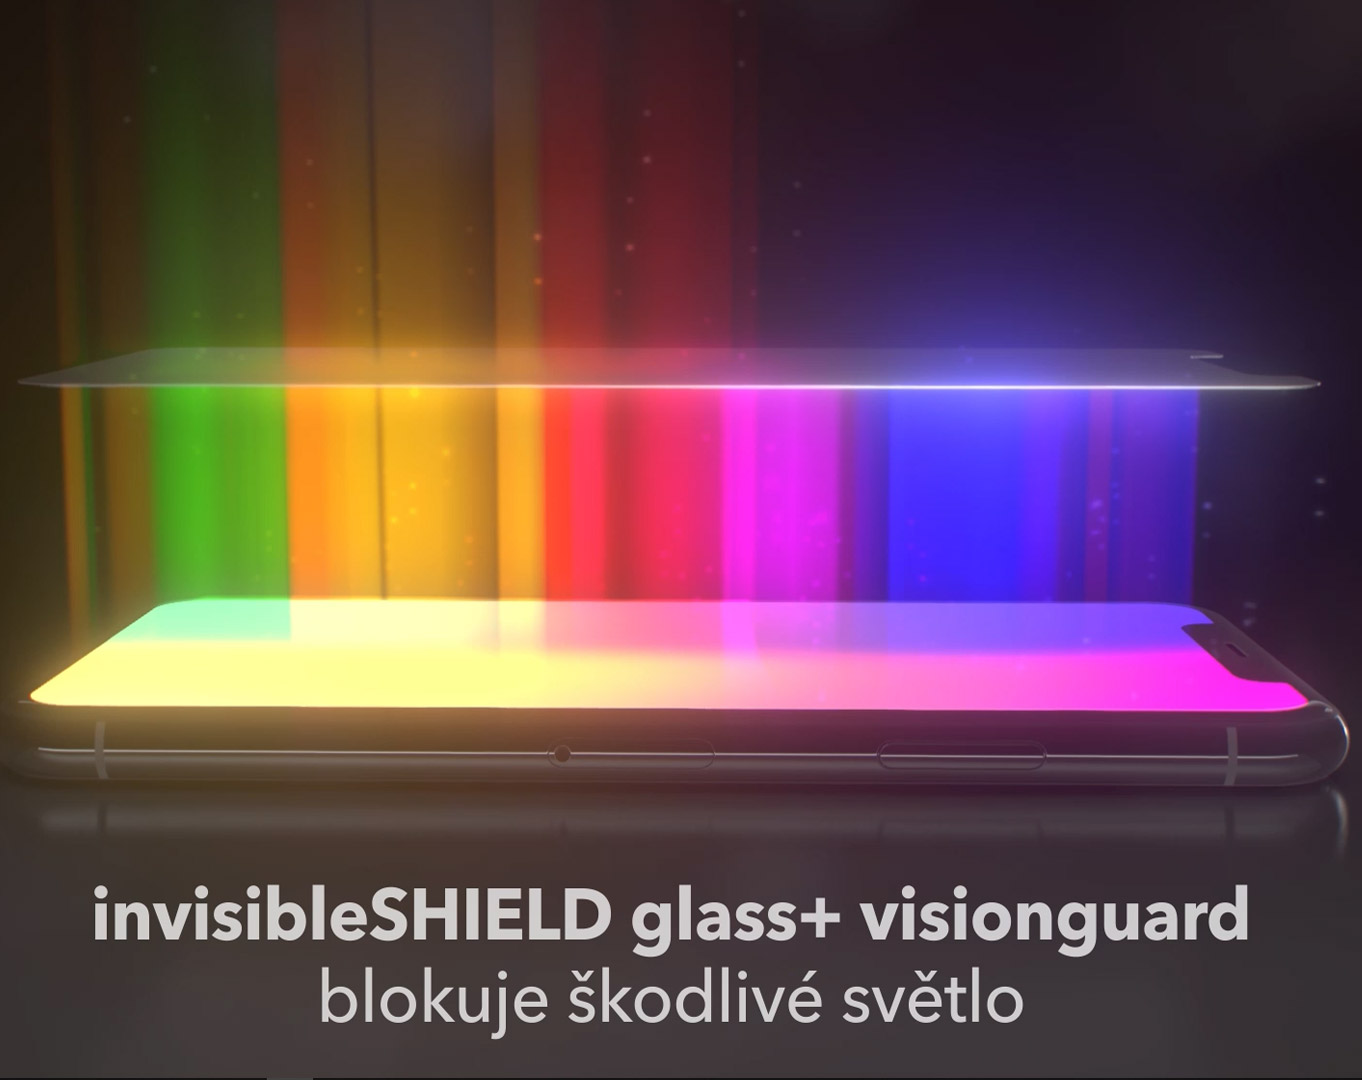 Invisibleshield Visionguard promo